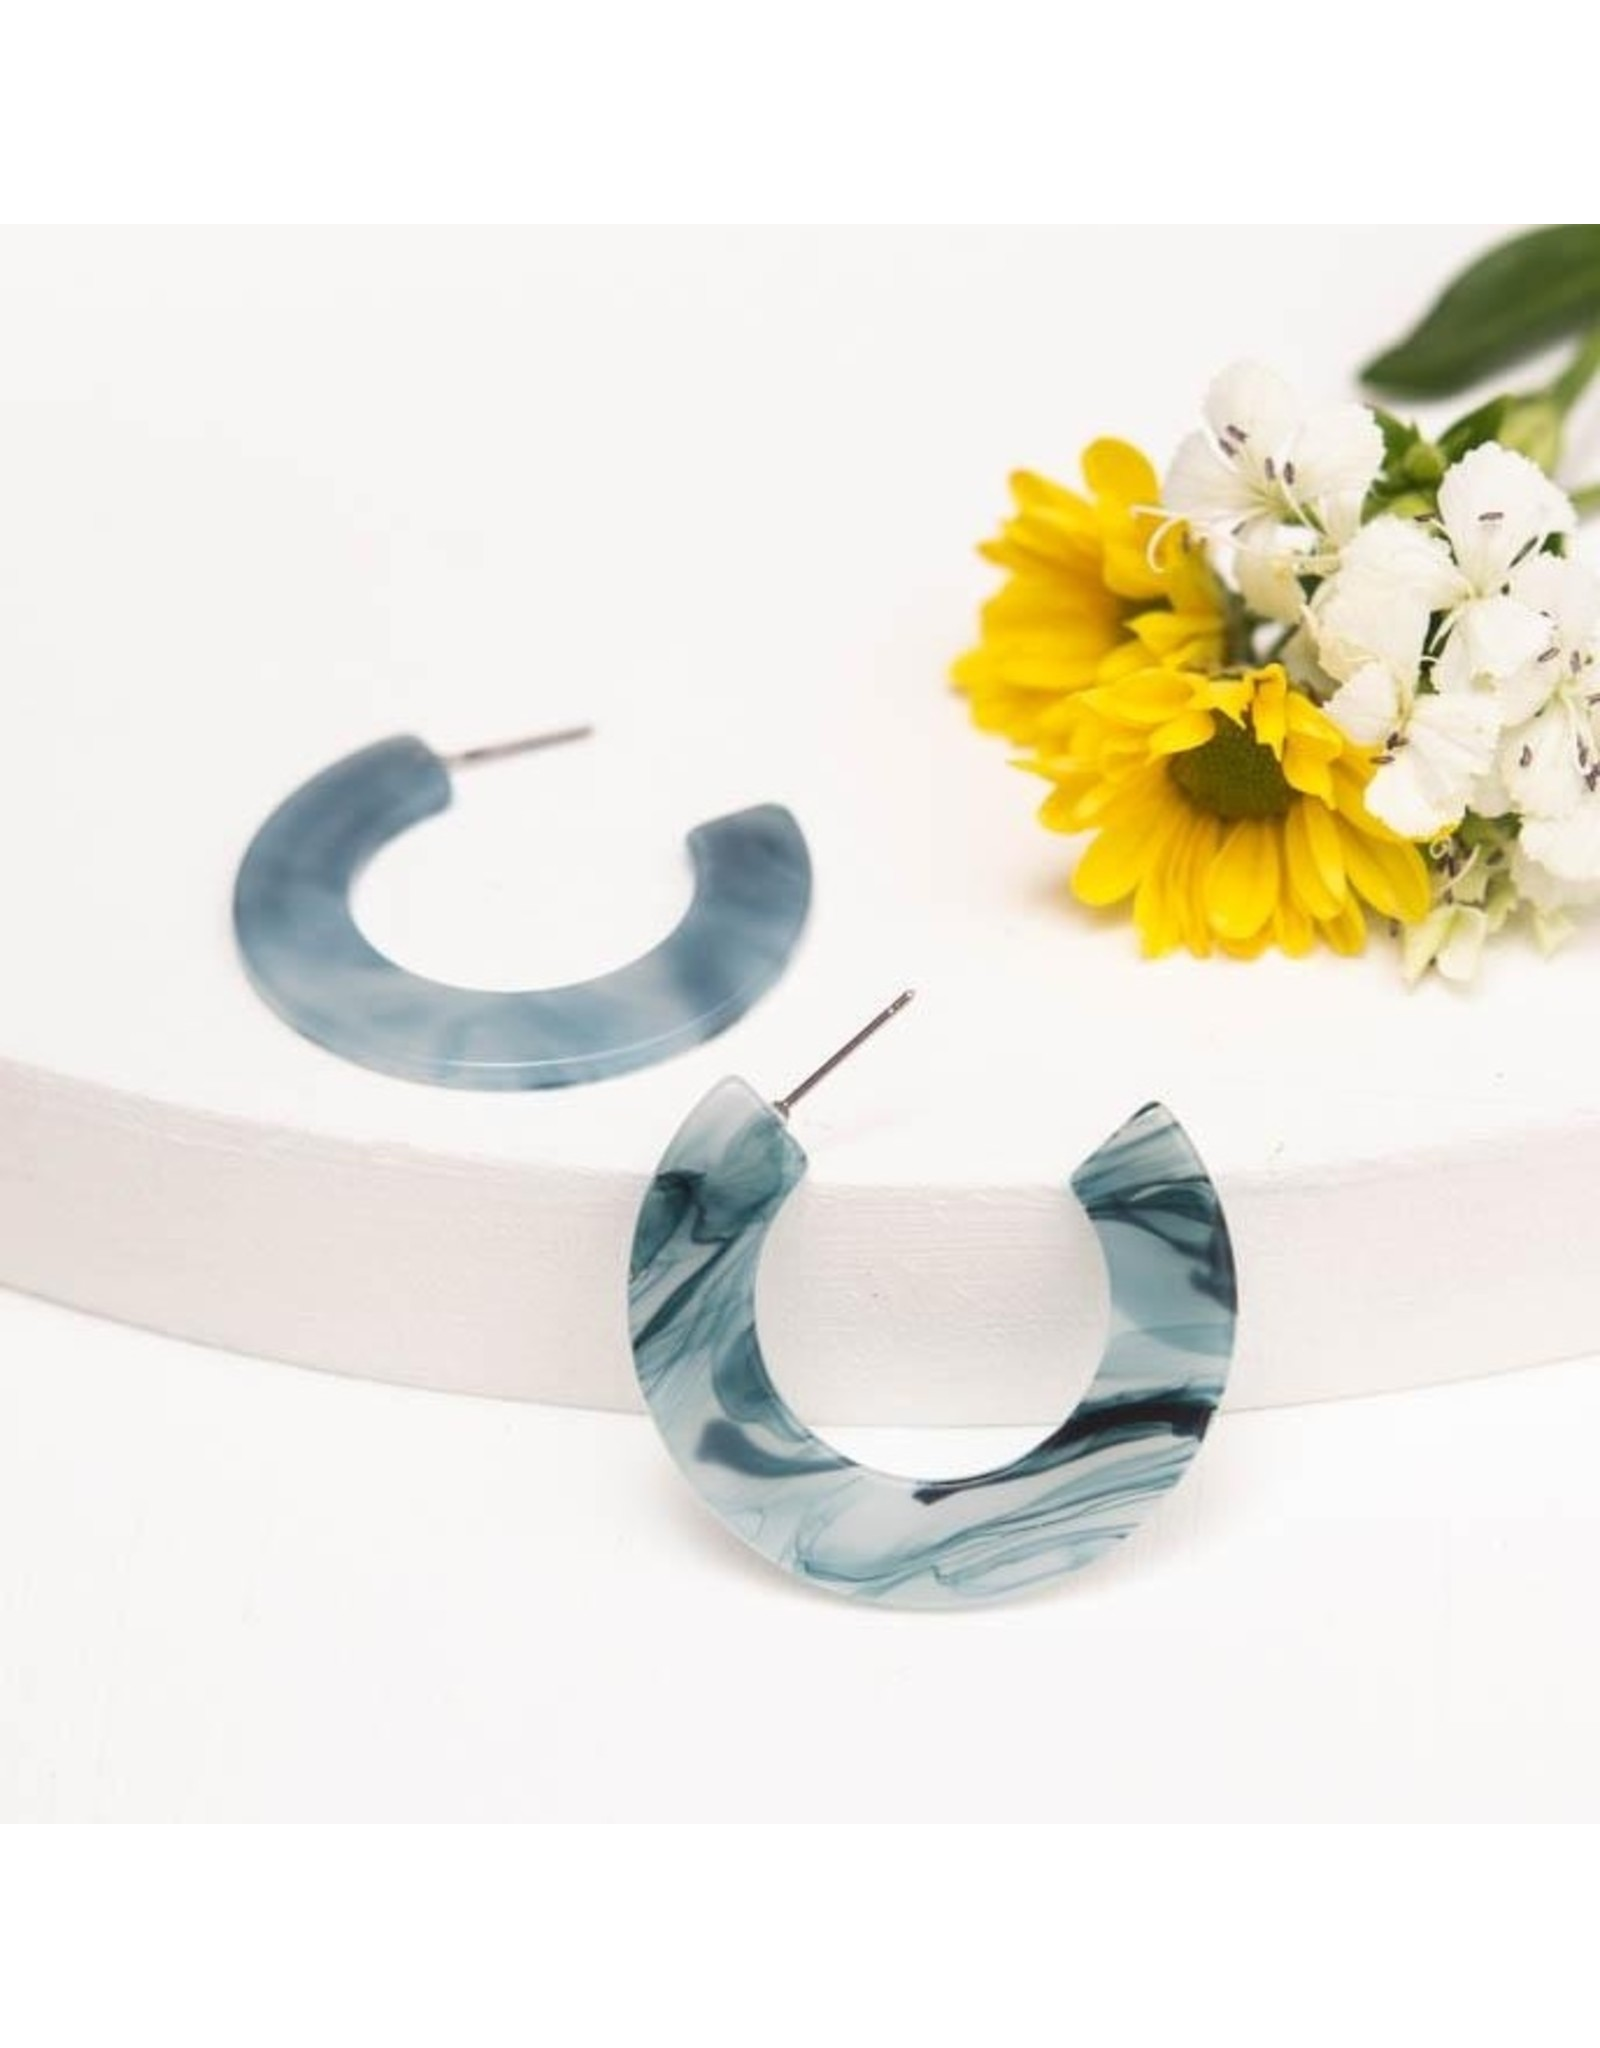 Starfish Project Daydream Resin Hoops, Tranquil Blue. China